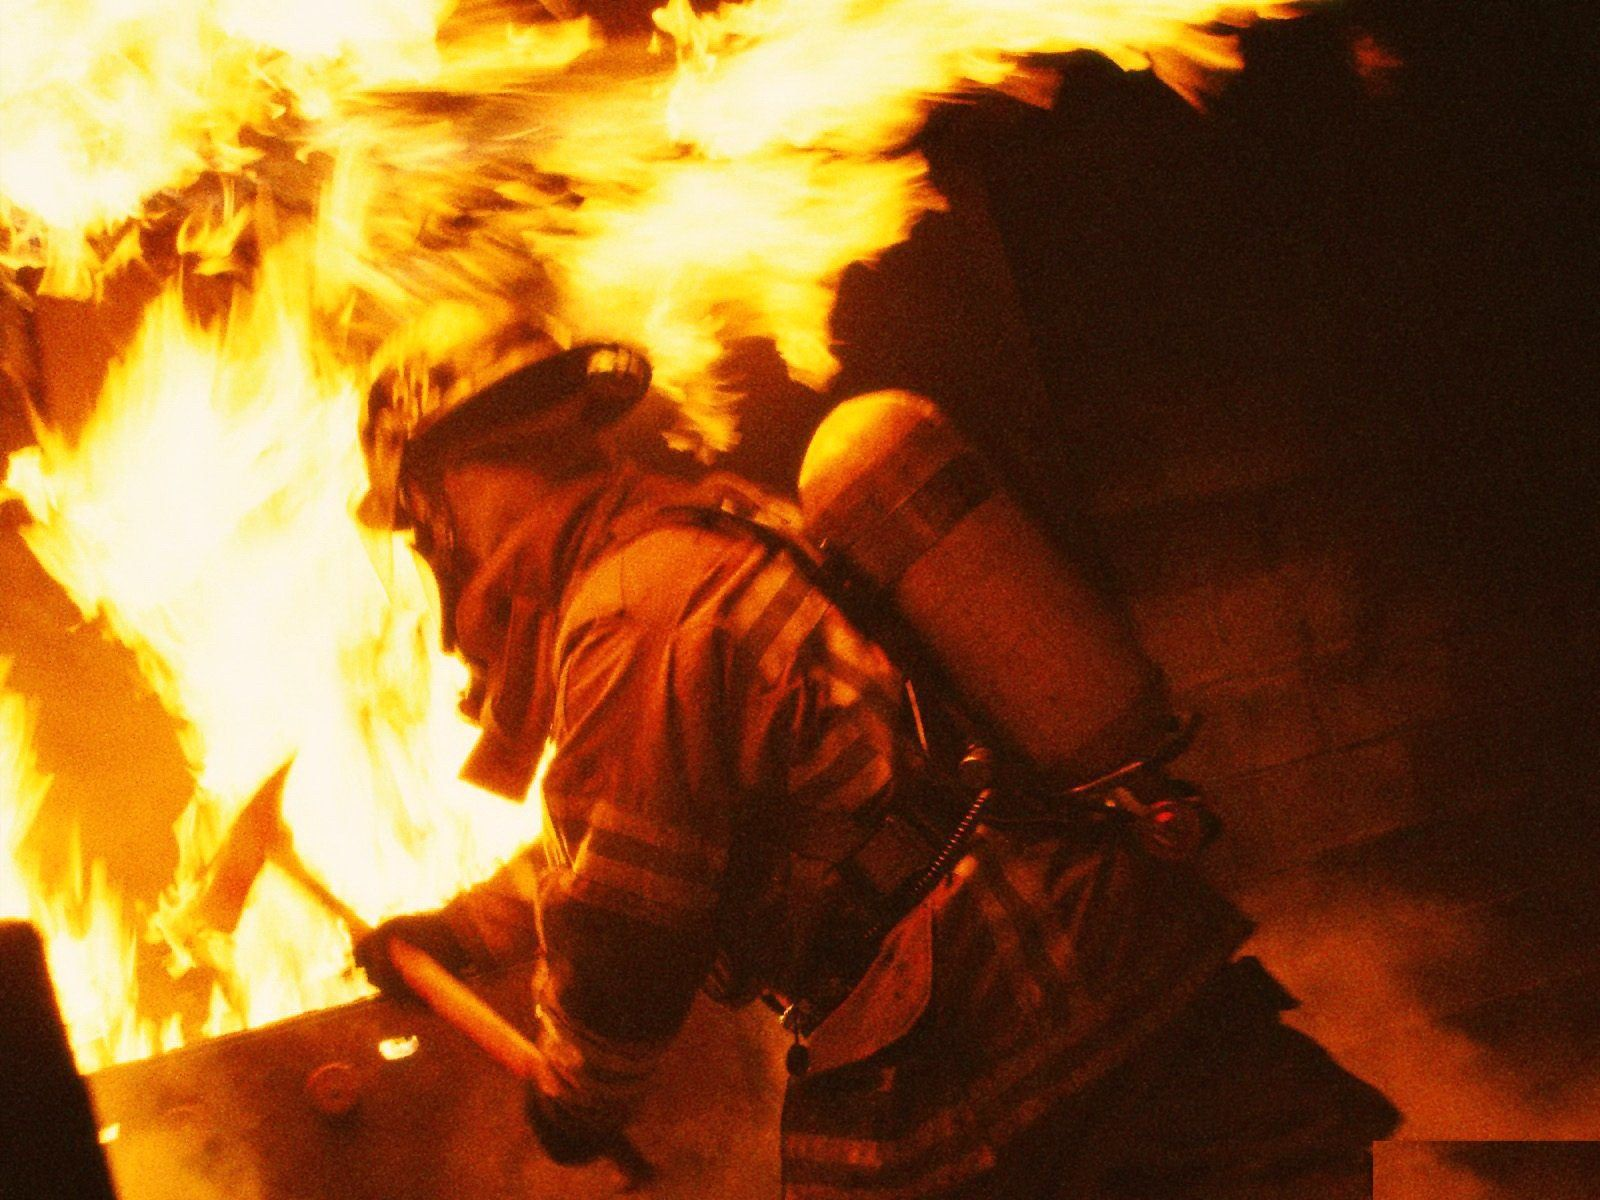 Fireman Pictures For Chevytech And All Fireman Page 199 Firefighter Firemen Pictures High Resolution Wallpapers